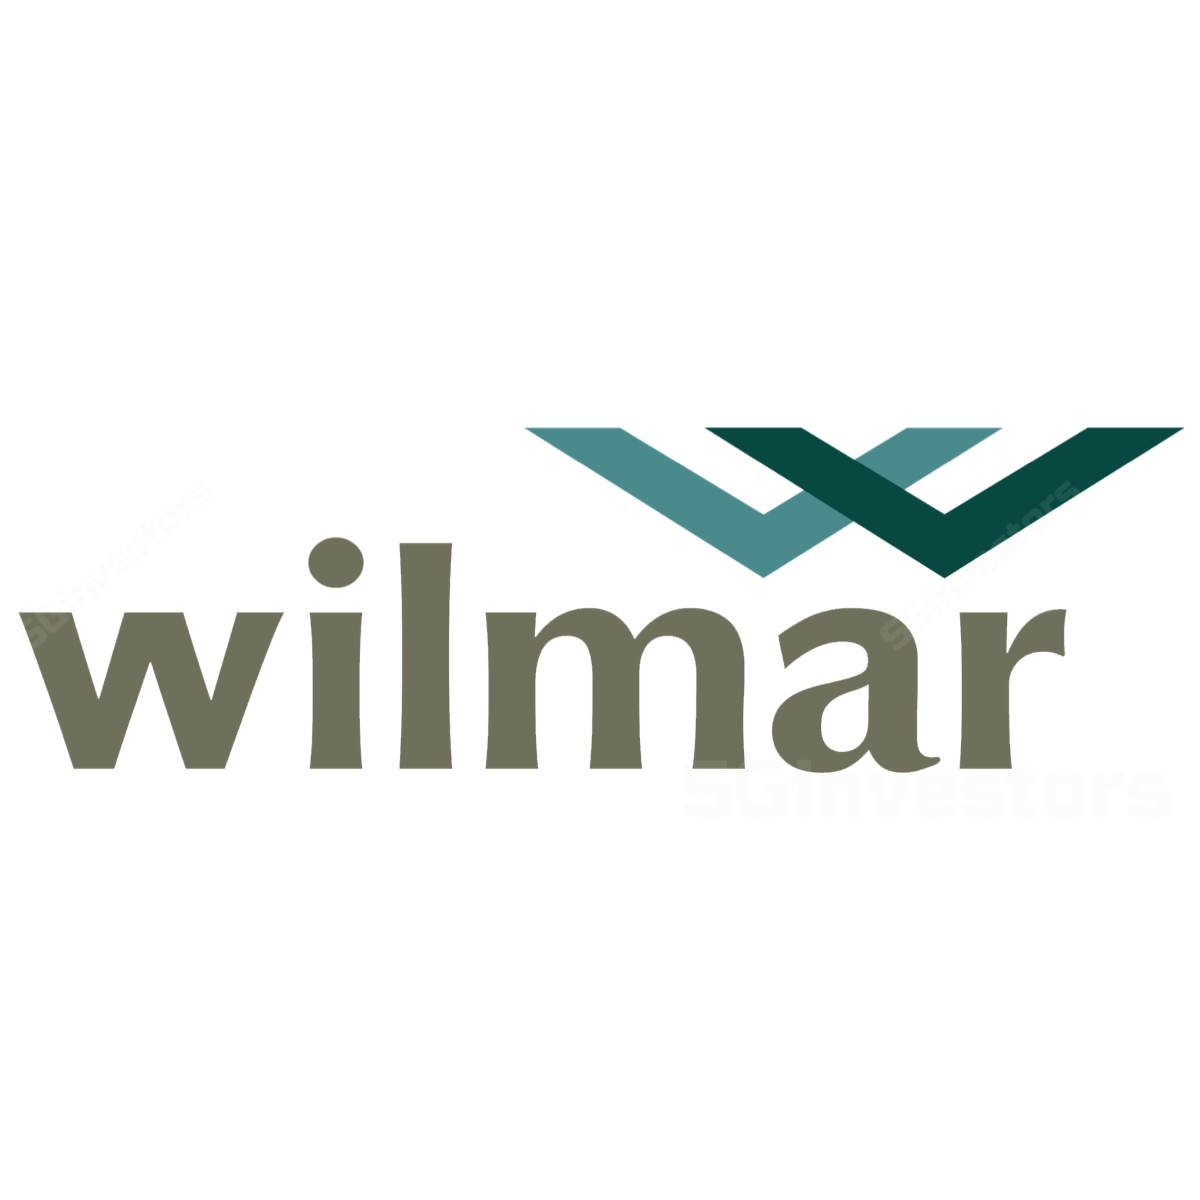 Wilmar International - UOB Kay Hian 2018-04-30: 1q18 Results Preview ~ Expecting A Good Quarter